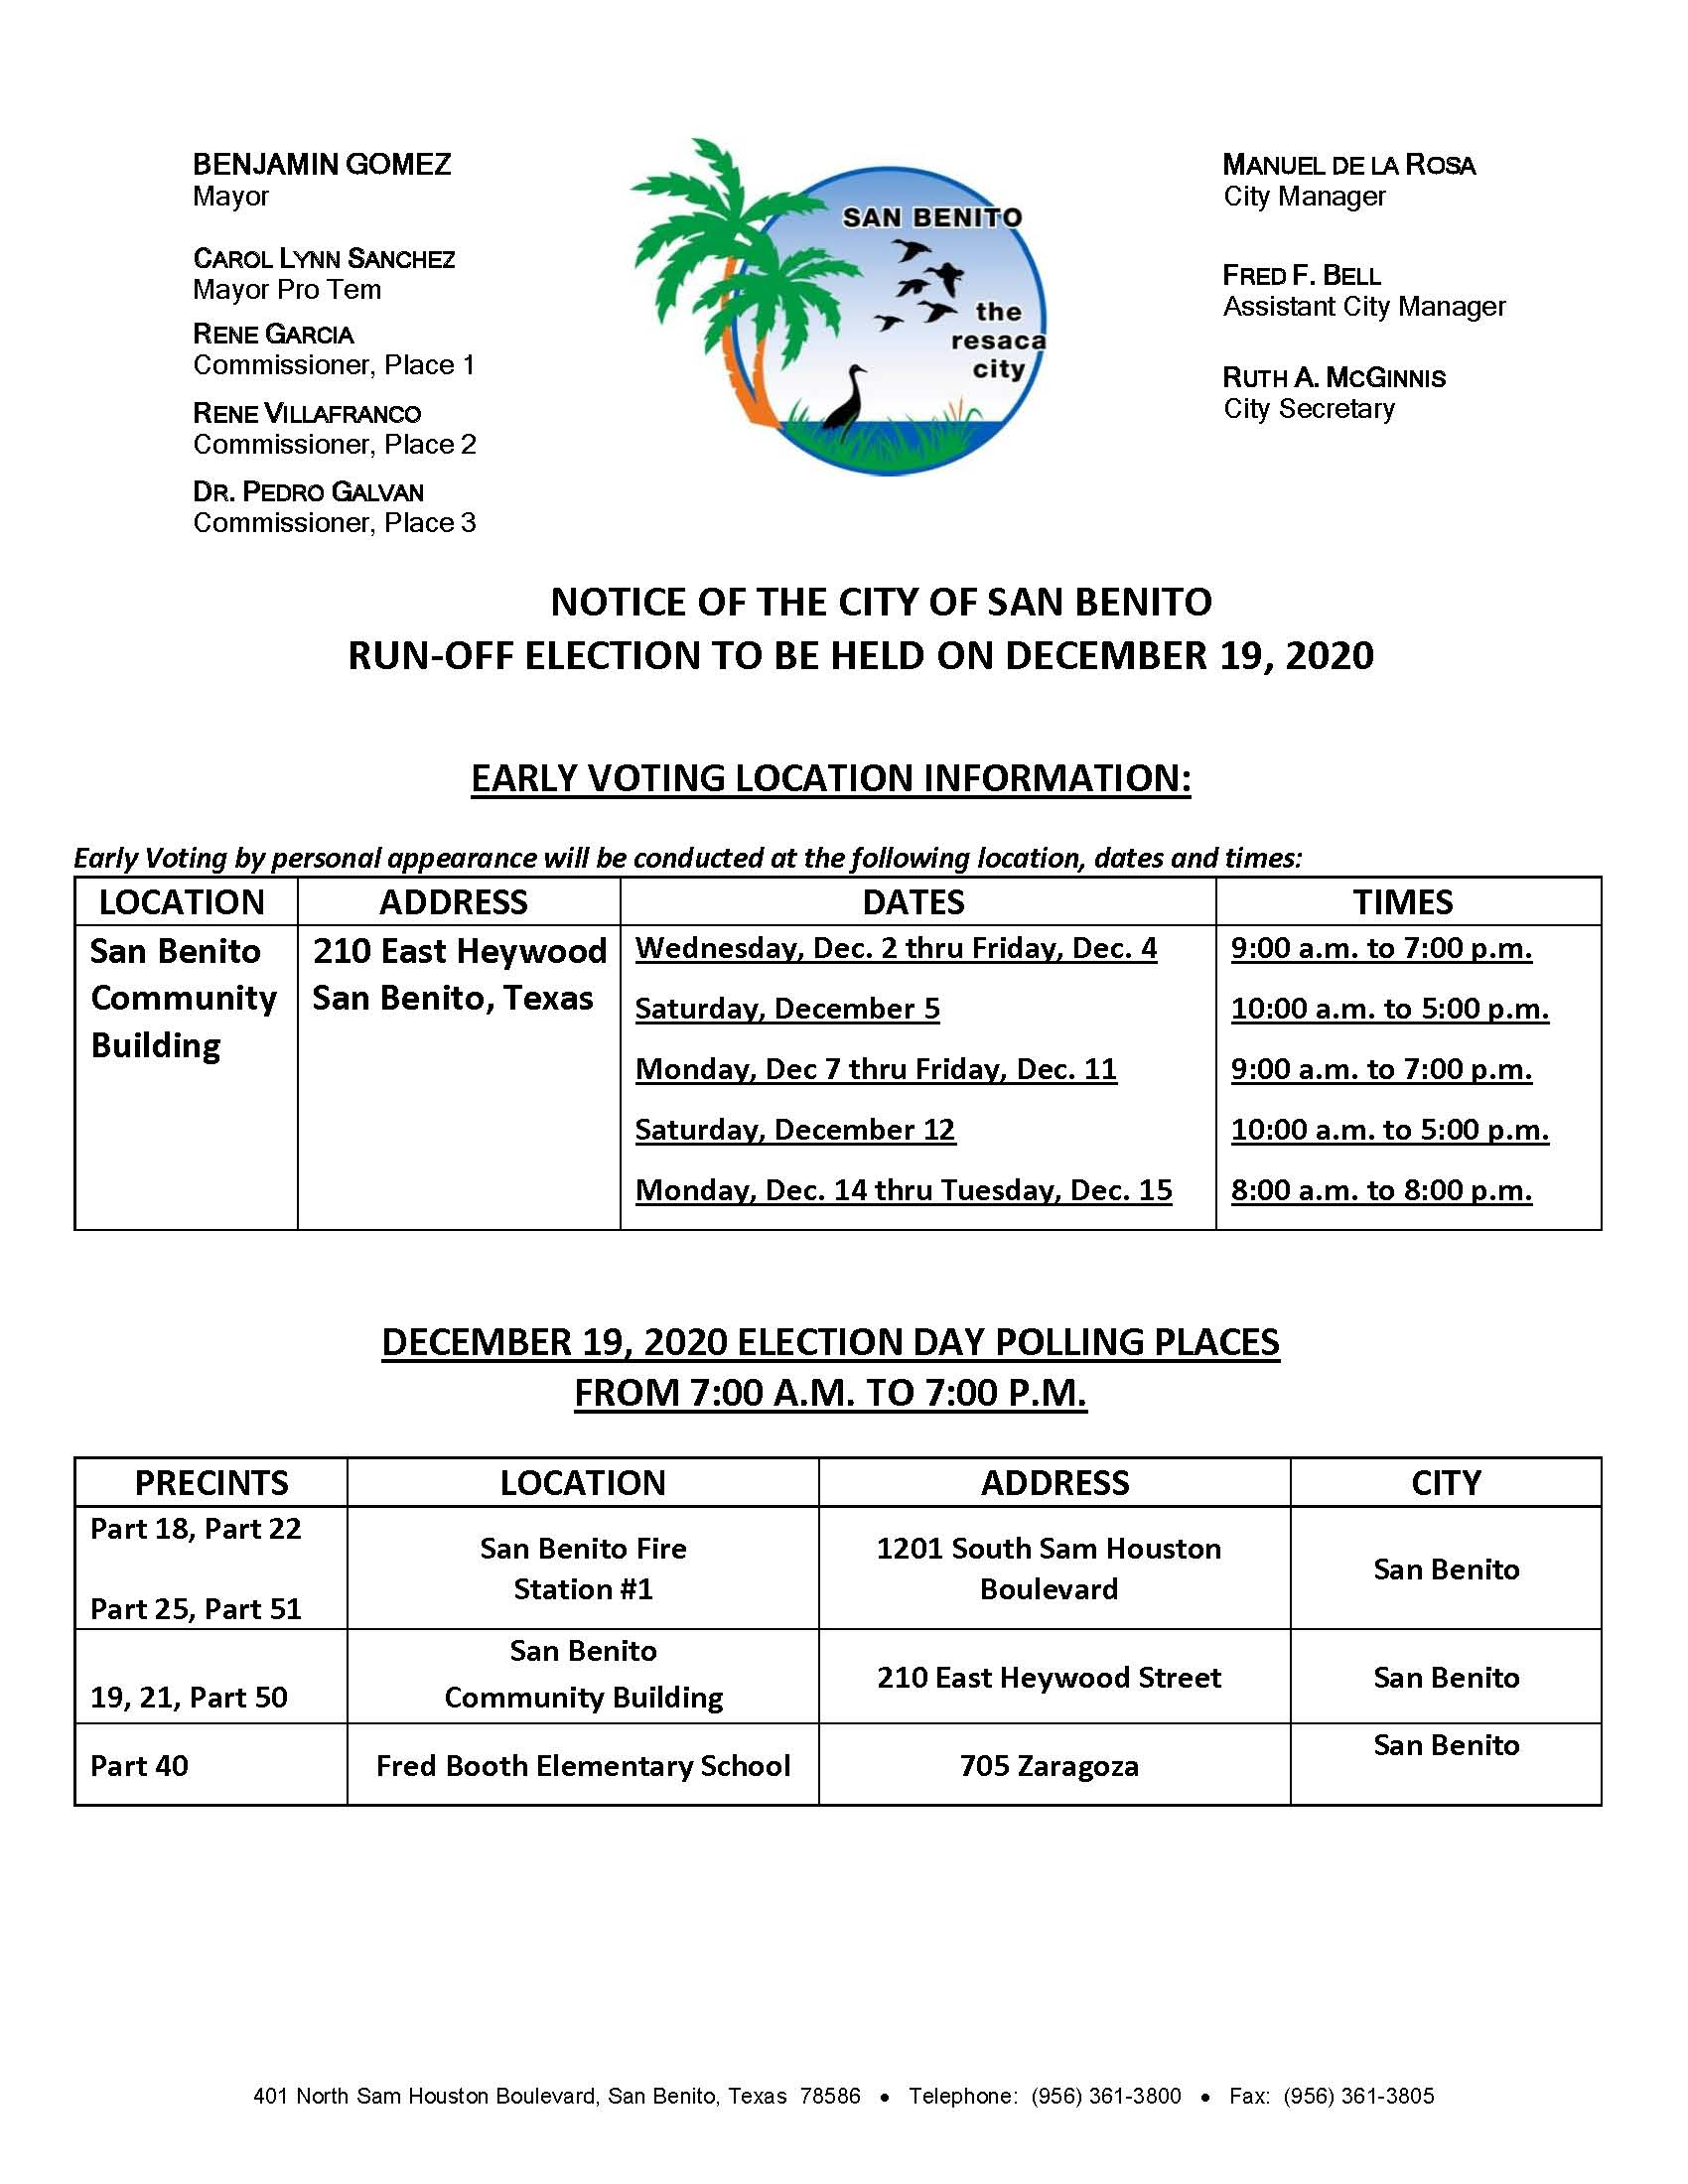 Notice of Early Voting Locations and Election Day for the December 19, 2020 Run-Off Election